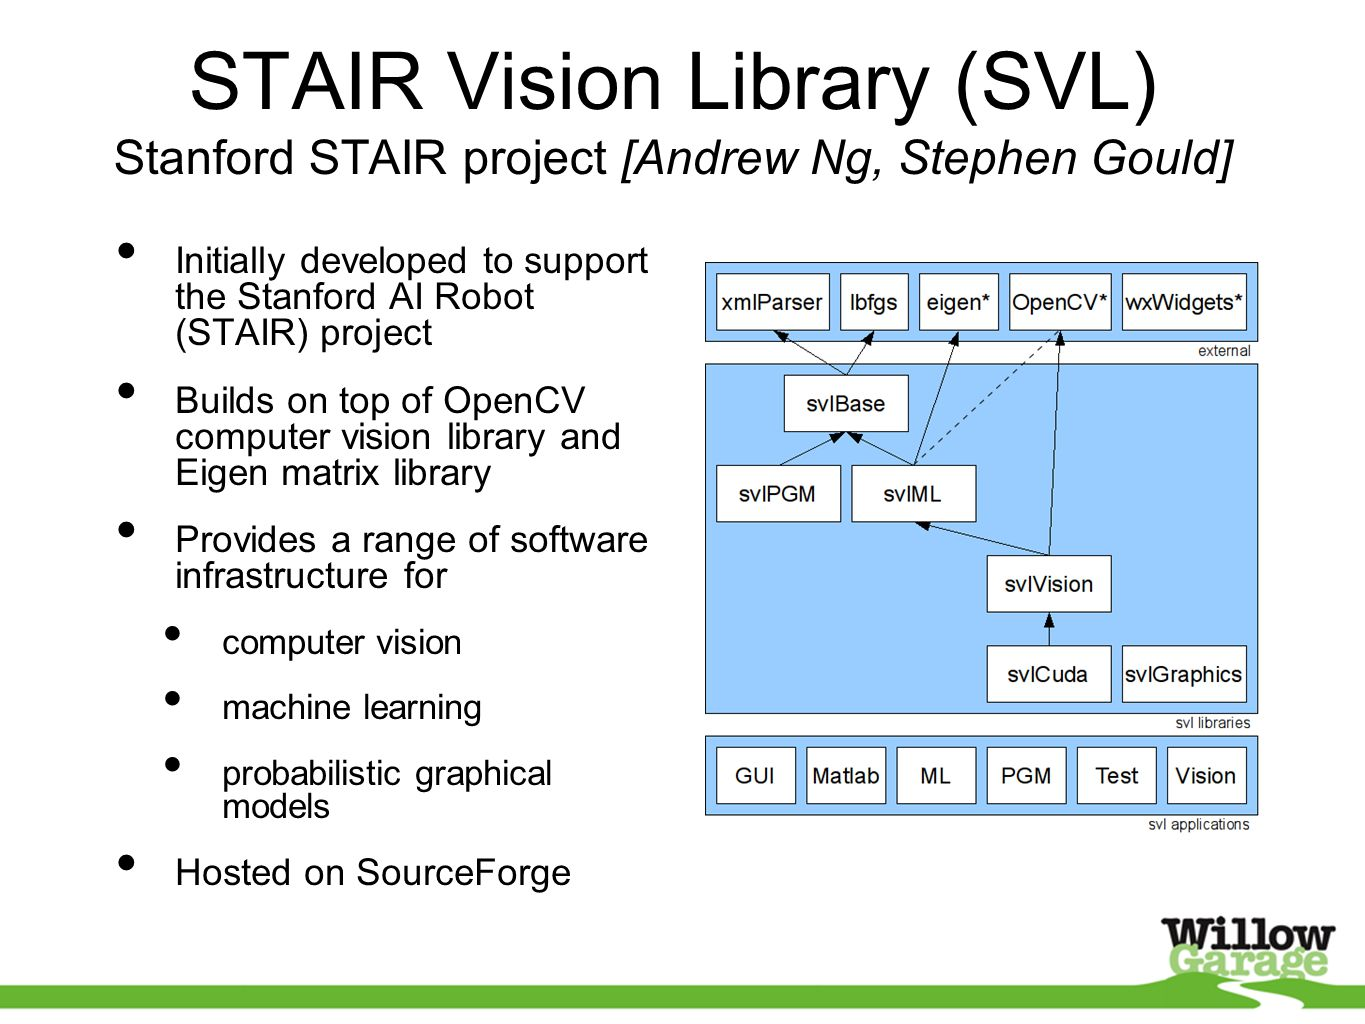 STAIR Vision Library (SVL) Stanford STAIR project [Andrew Ng, Stephen Gould] Initially developed to support the Stanford AI Robot (STAIR) project Builds on top of OpenCV computer vision library and Eigen matrix library Provides a range of software infrastructure for computer vision machine learning probabilistic graphical models Hosted on SourceForge